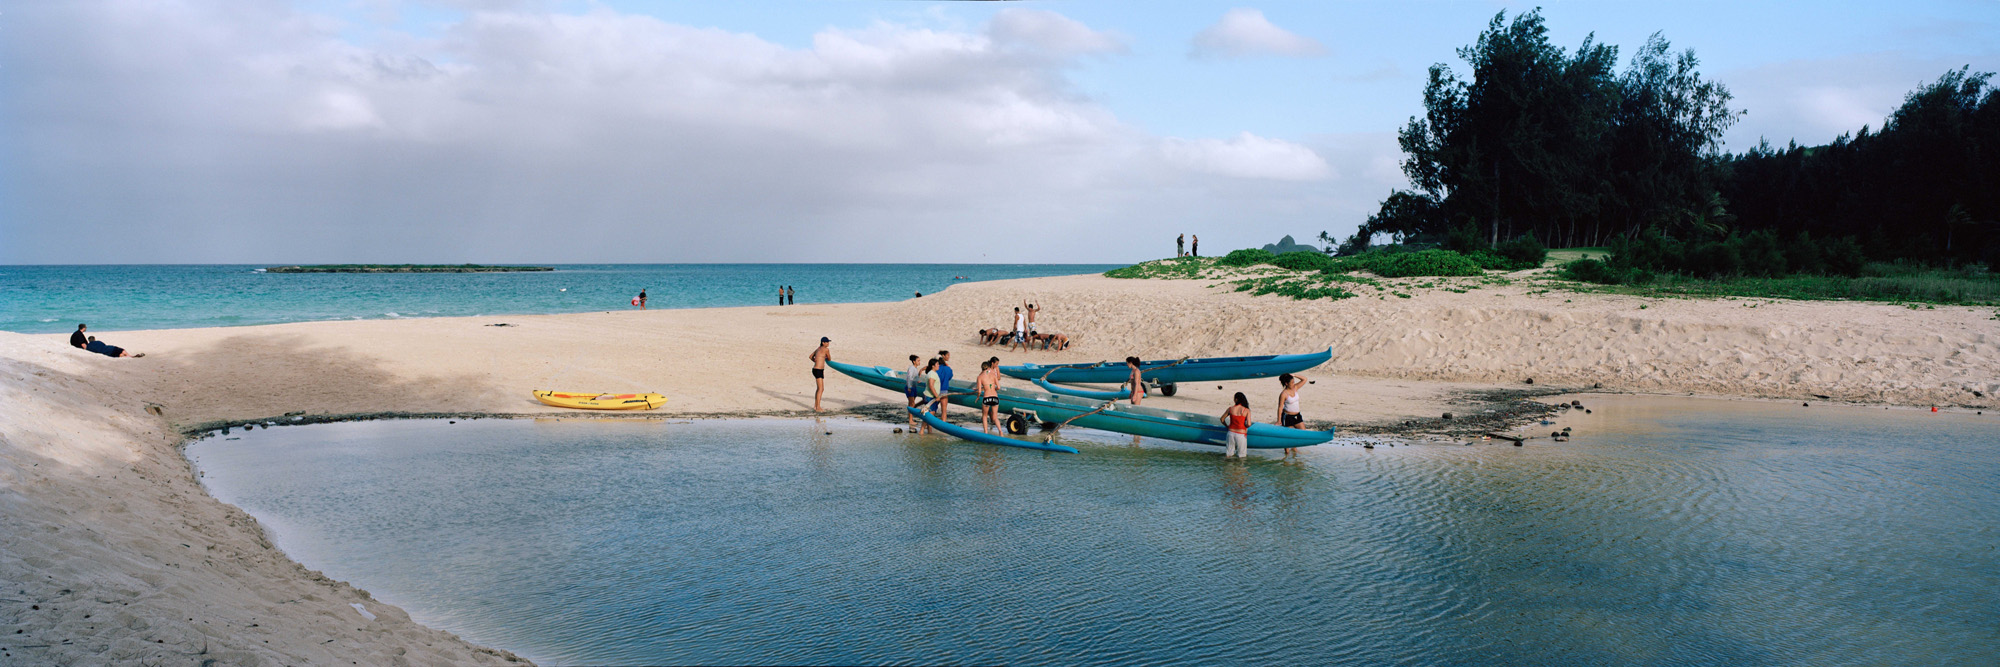 Canoe School, Kailua, Hawaii 2004